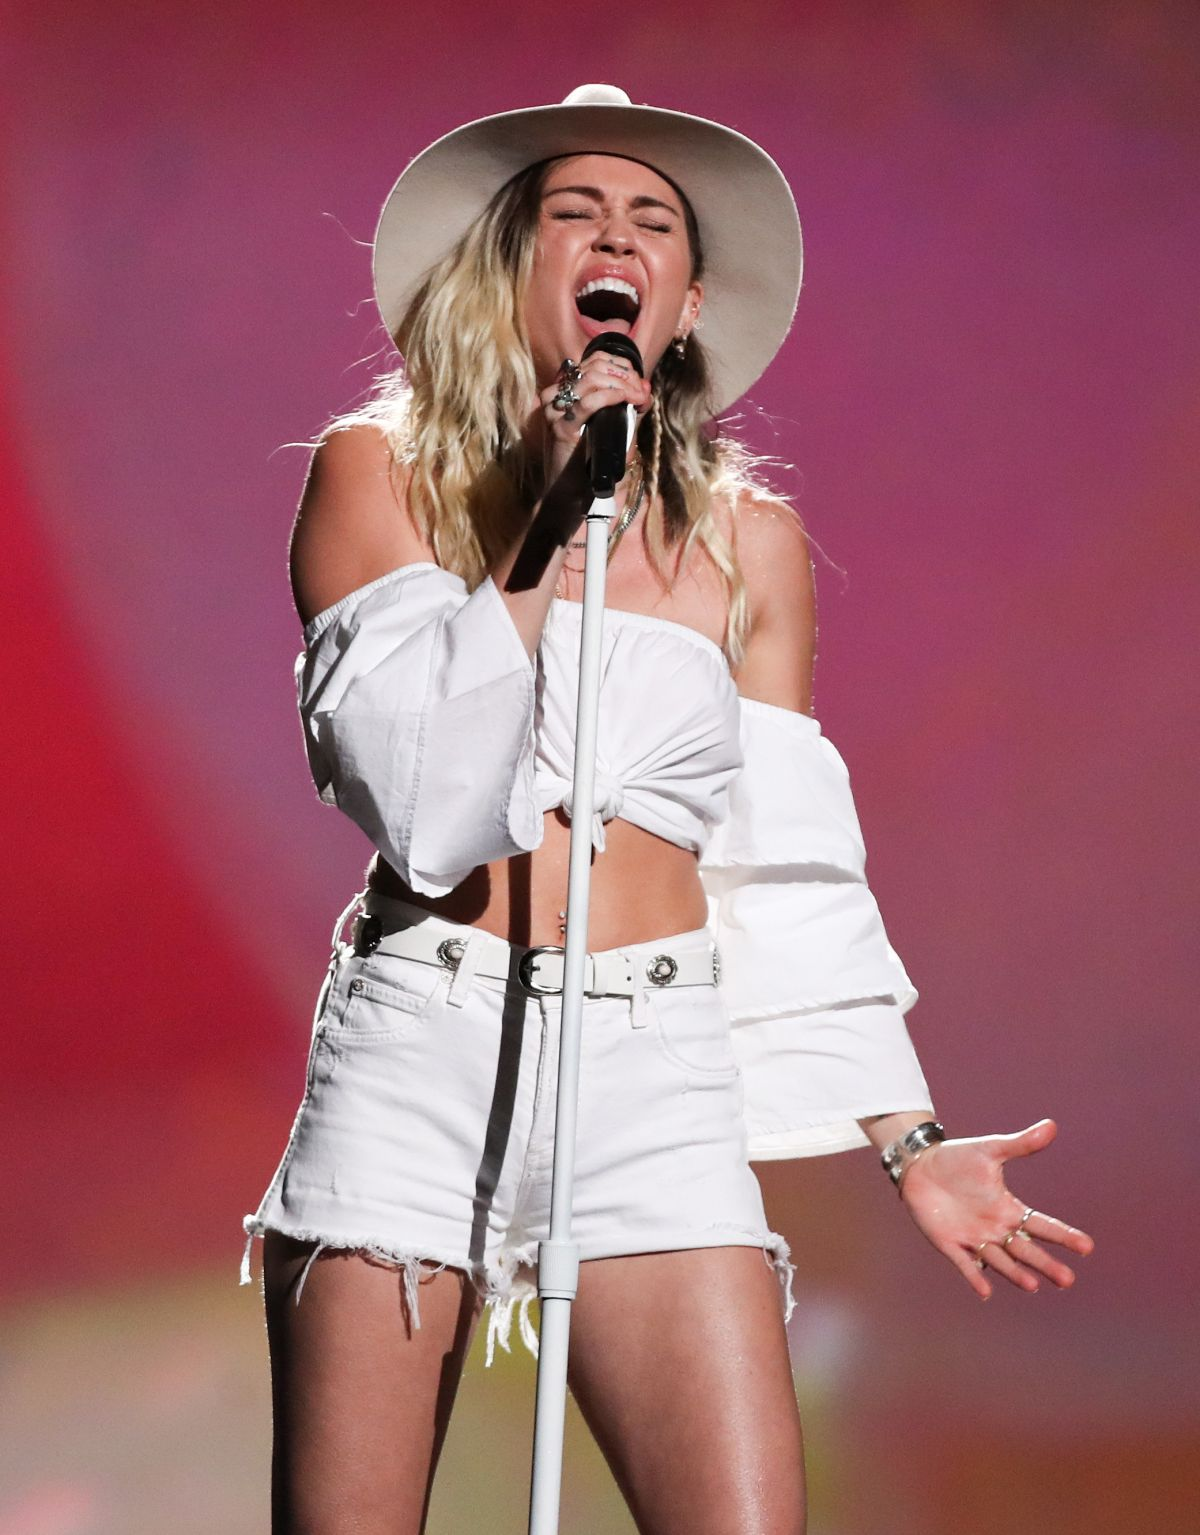 MILEY CYRUS Performs at 2017 Billboard Music Awards in Las Vegas 05/21/2017